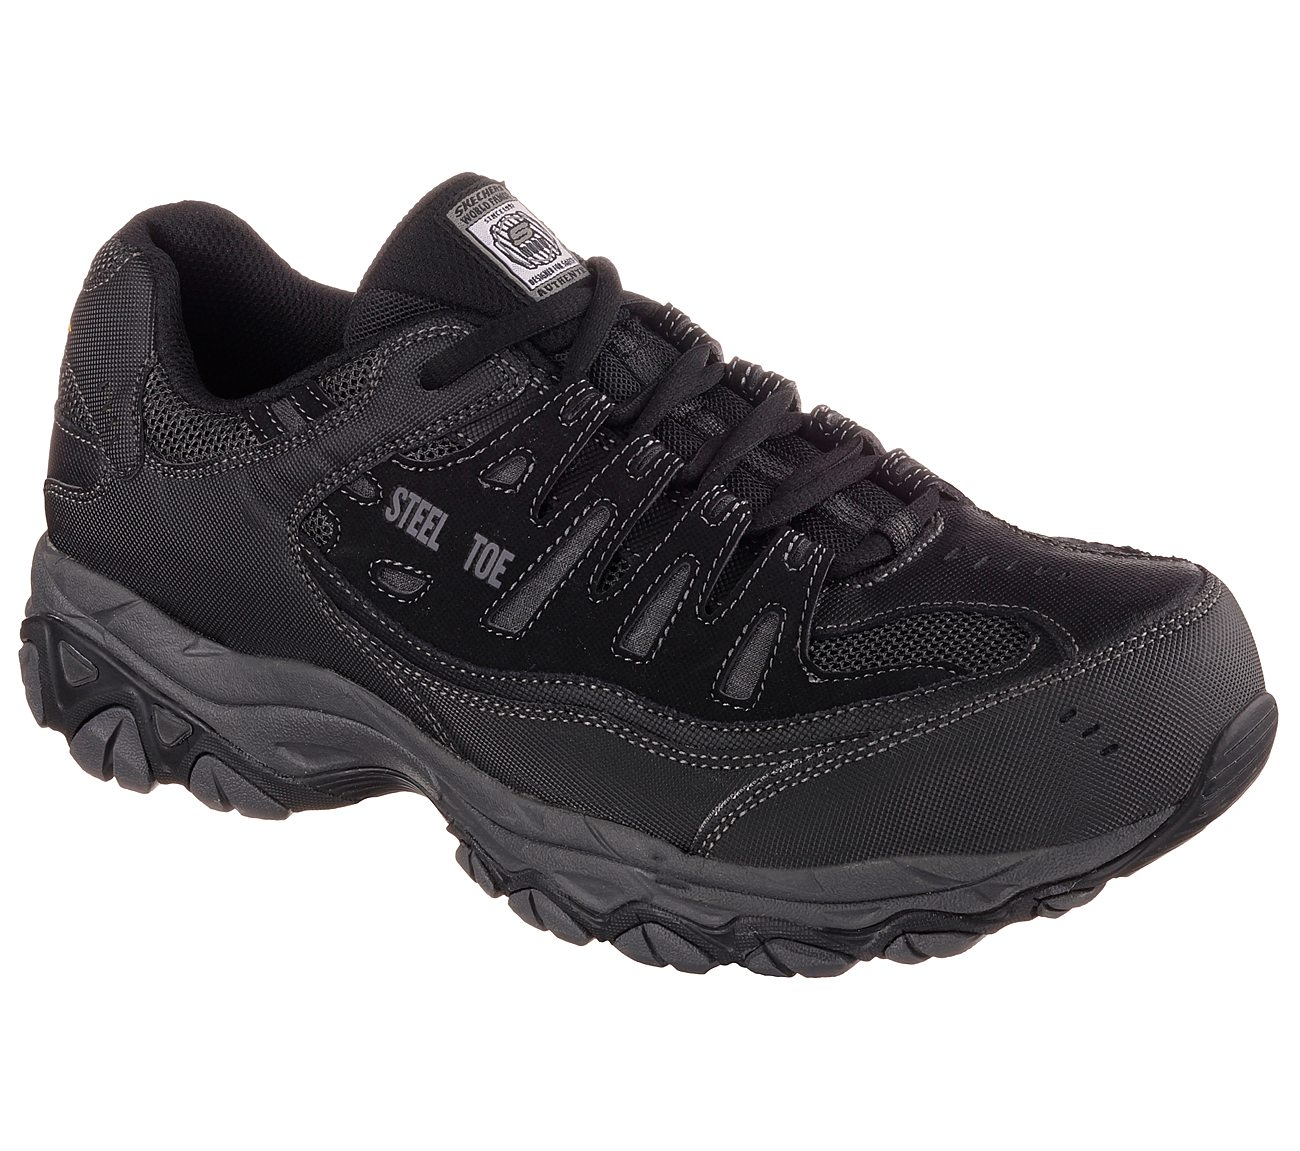 fbaf3840d0c548 Buy SKECHERS Work Relaxed Fit: Crankton ST Safety Toe Shoes only $65.00